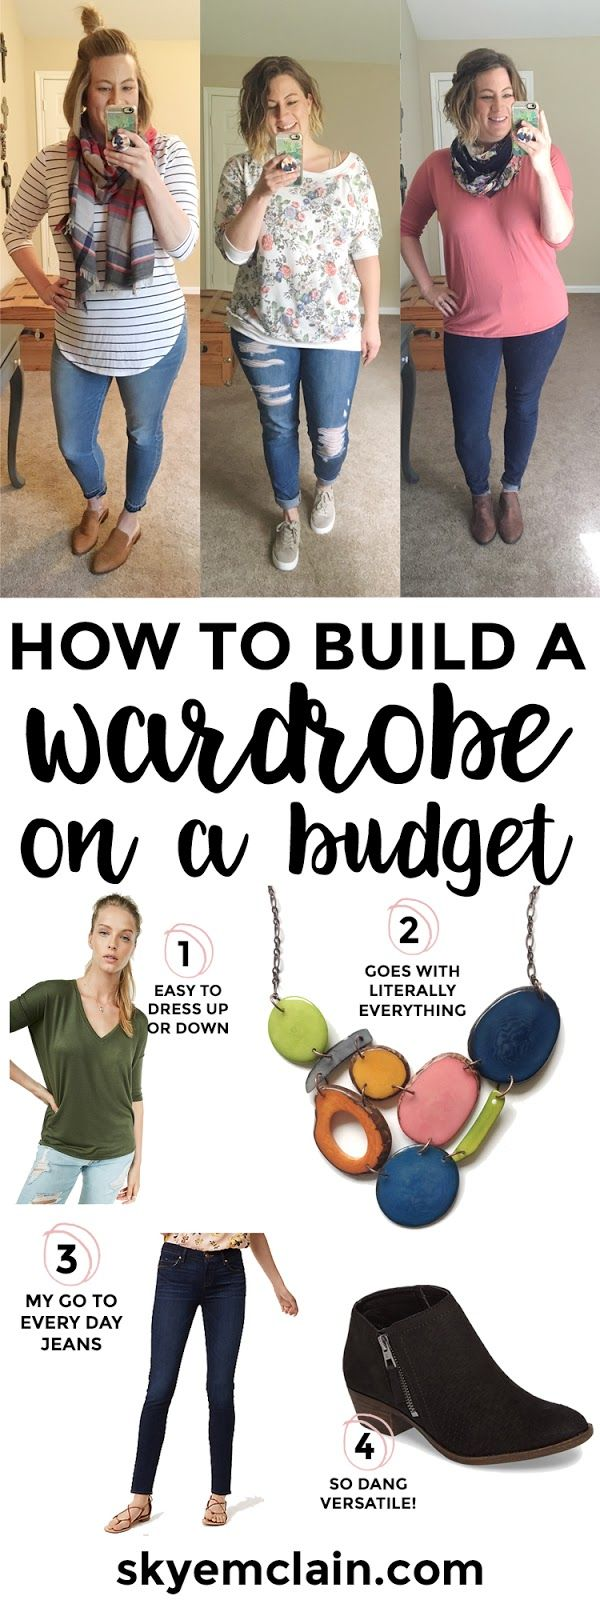 Creating a wardrobe on a budget does not have to be complicated or fussy! See how she found what worked best for her and built a super cute wardrobe without breaking the bank! #fashion #ootd